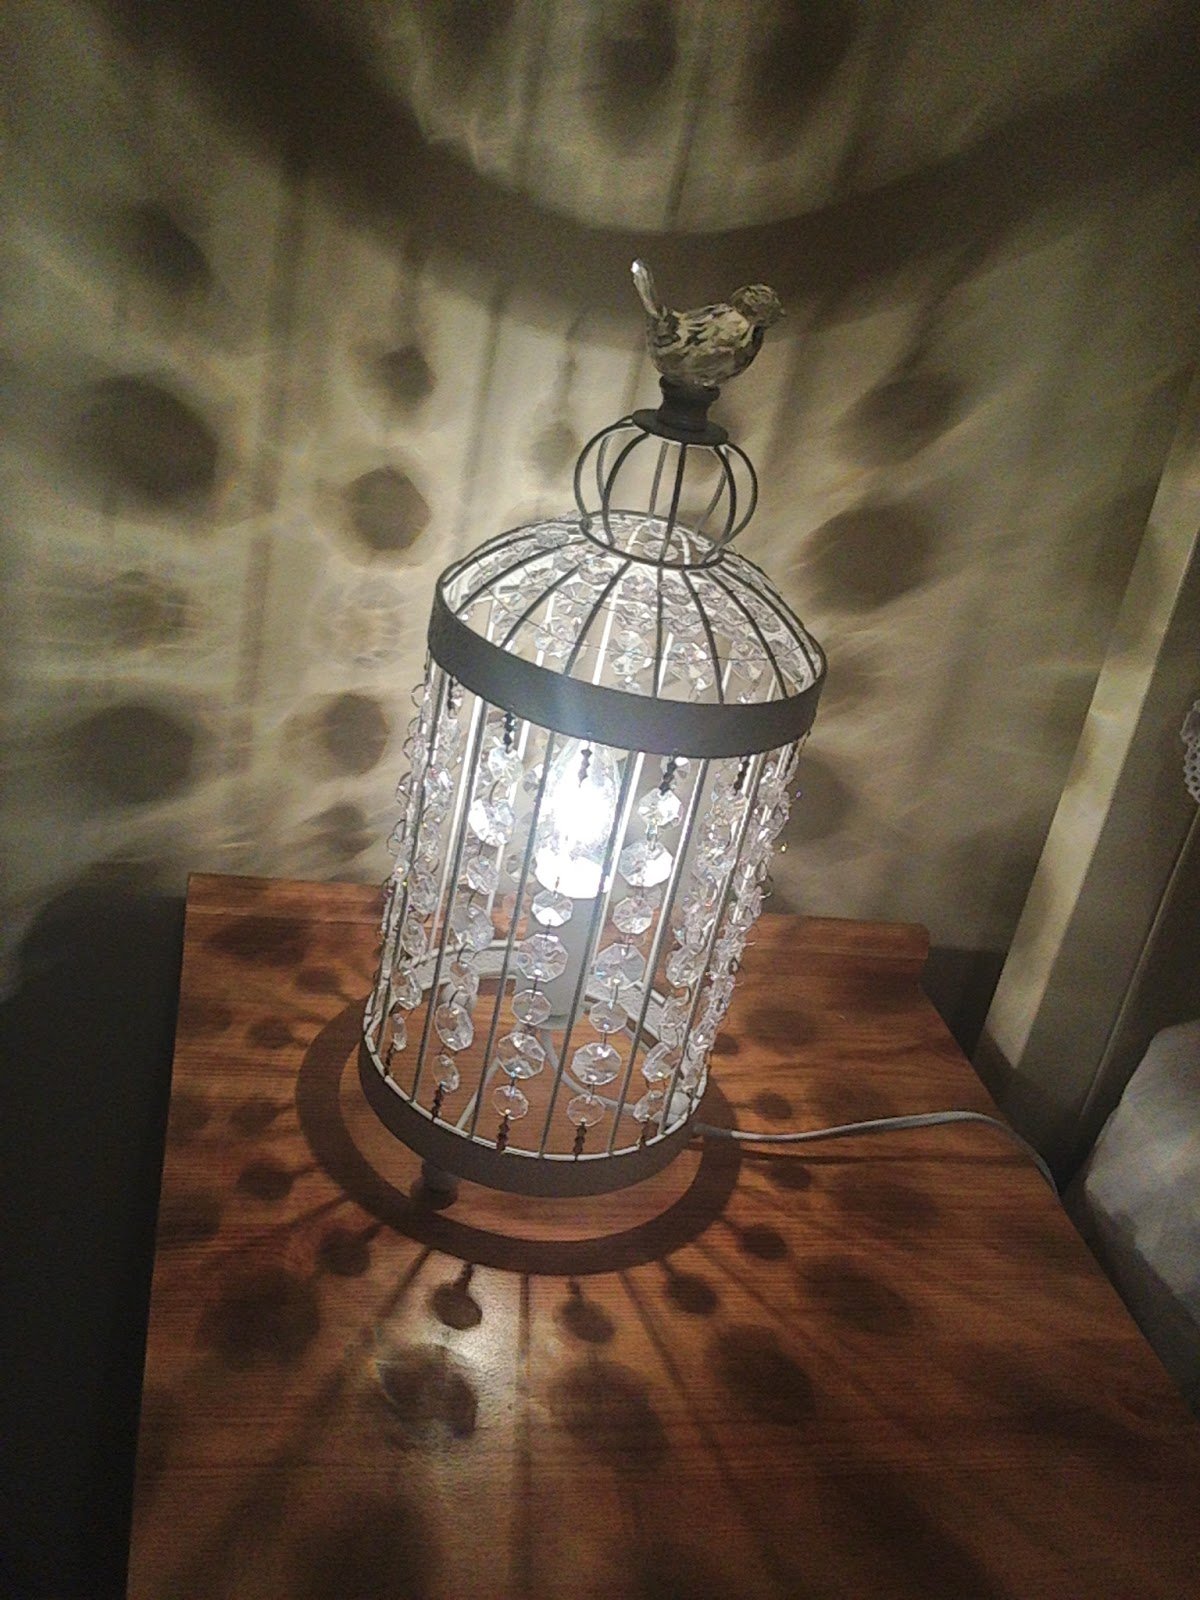 birdcage industrial pack of cap ceiling set lampshade contents shade dd lamp quality base light retro cy high wall package x creative item vintage glass accessories